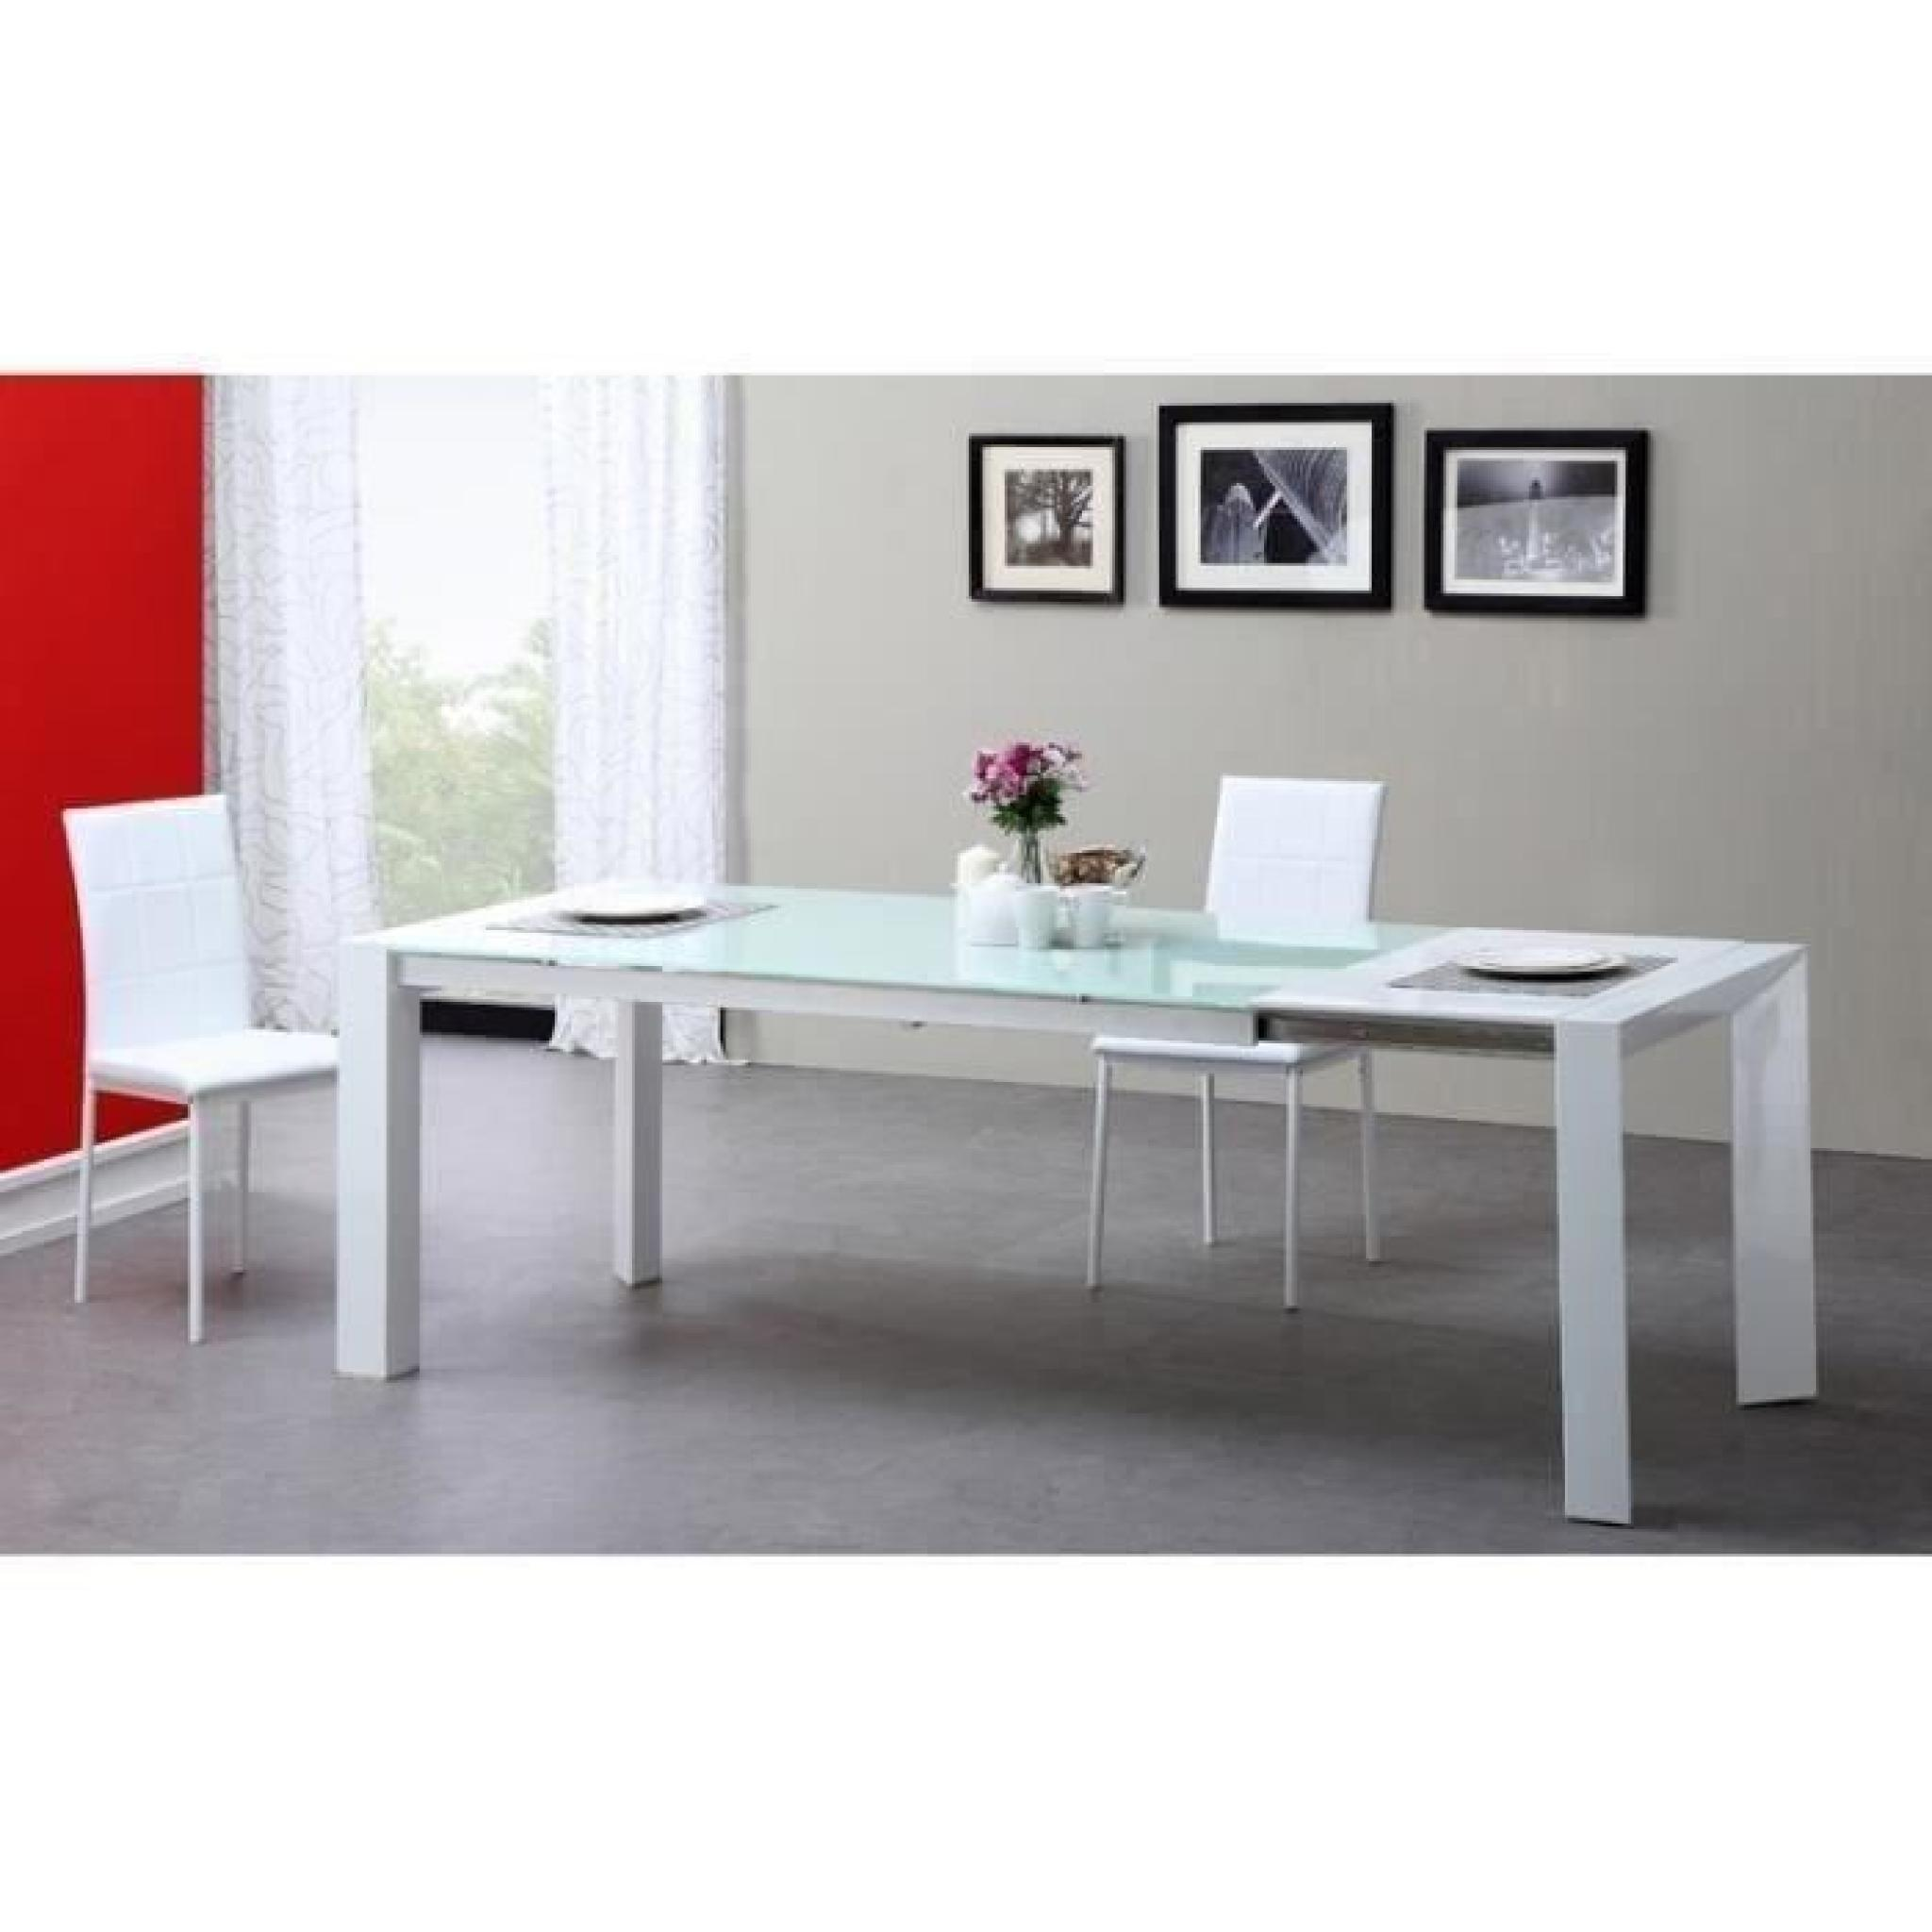 Table Sejour Verre Milano Table Extensible 180 à 230cm Verre Blanc